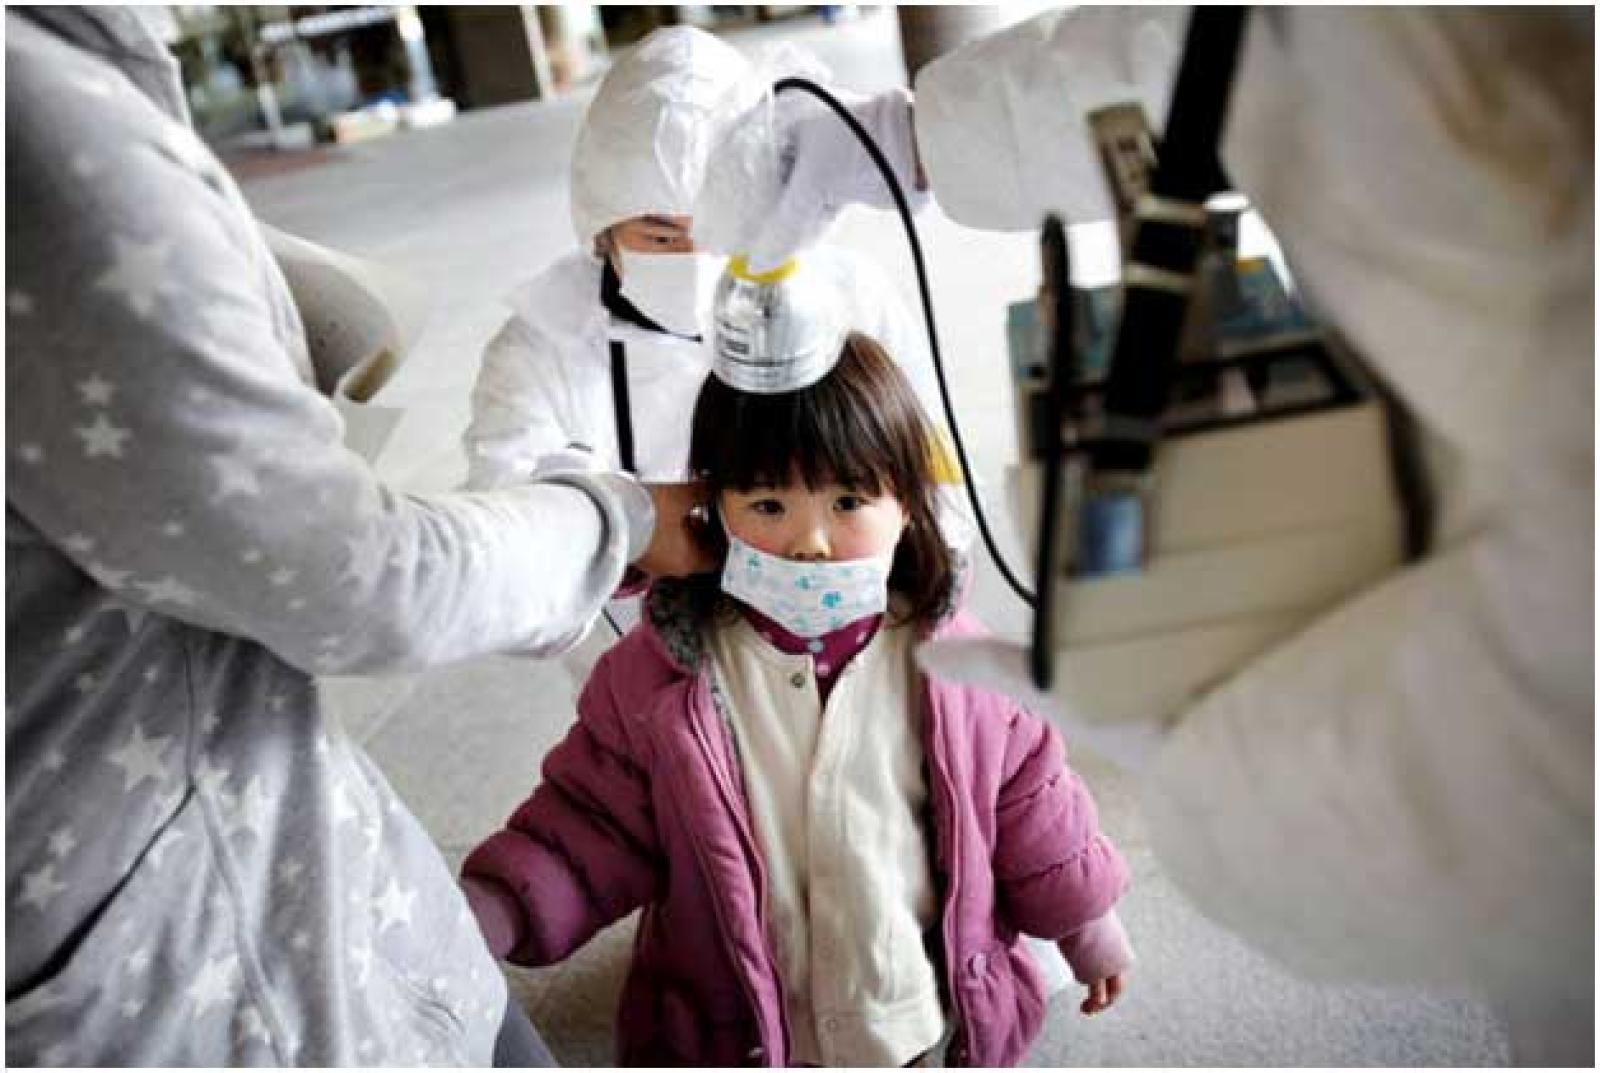 A child inspected in Fukushima prefecture, Japan